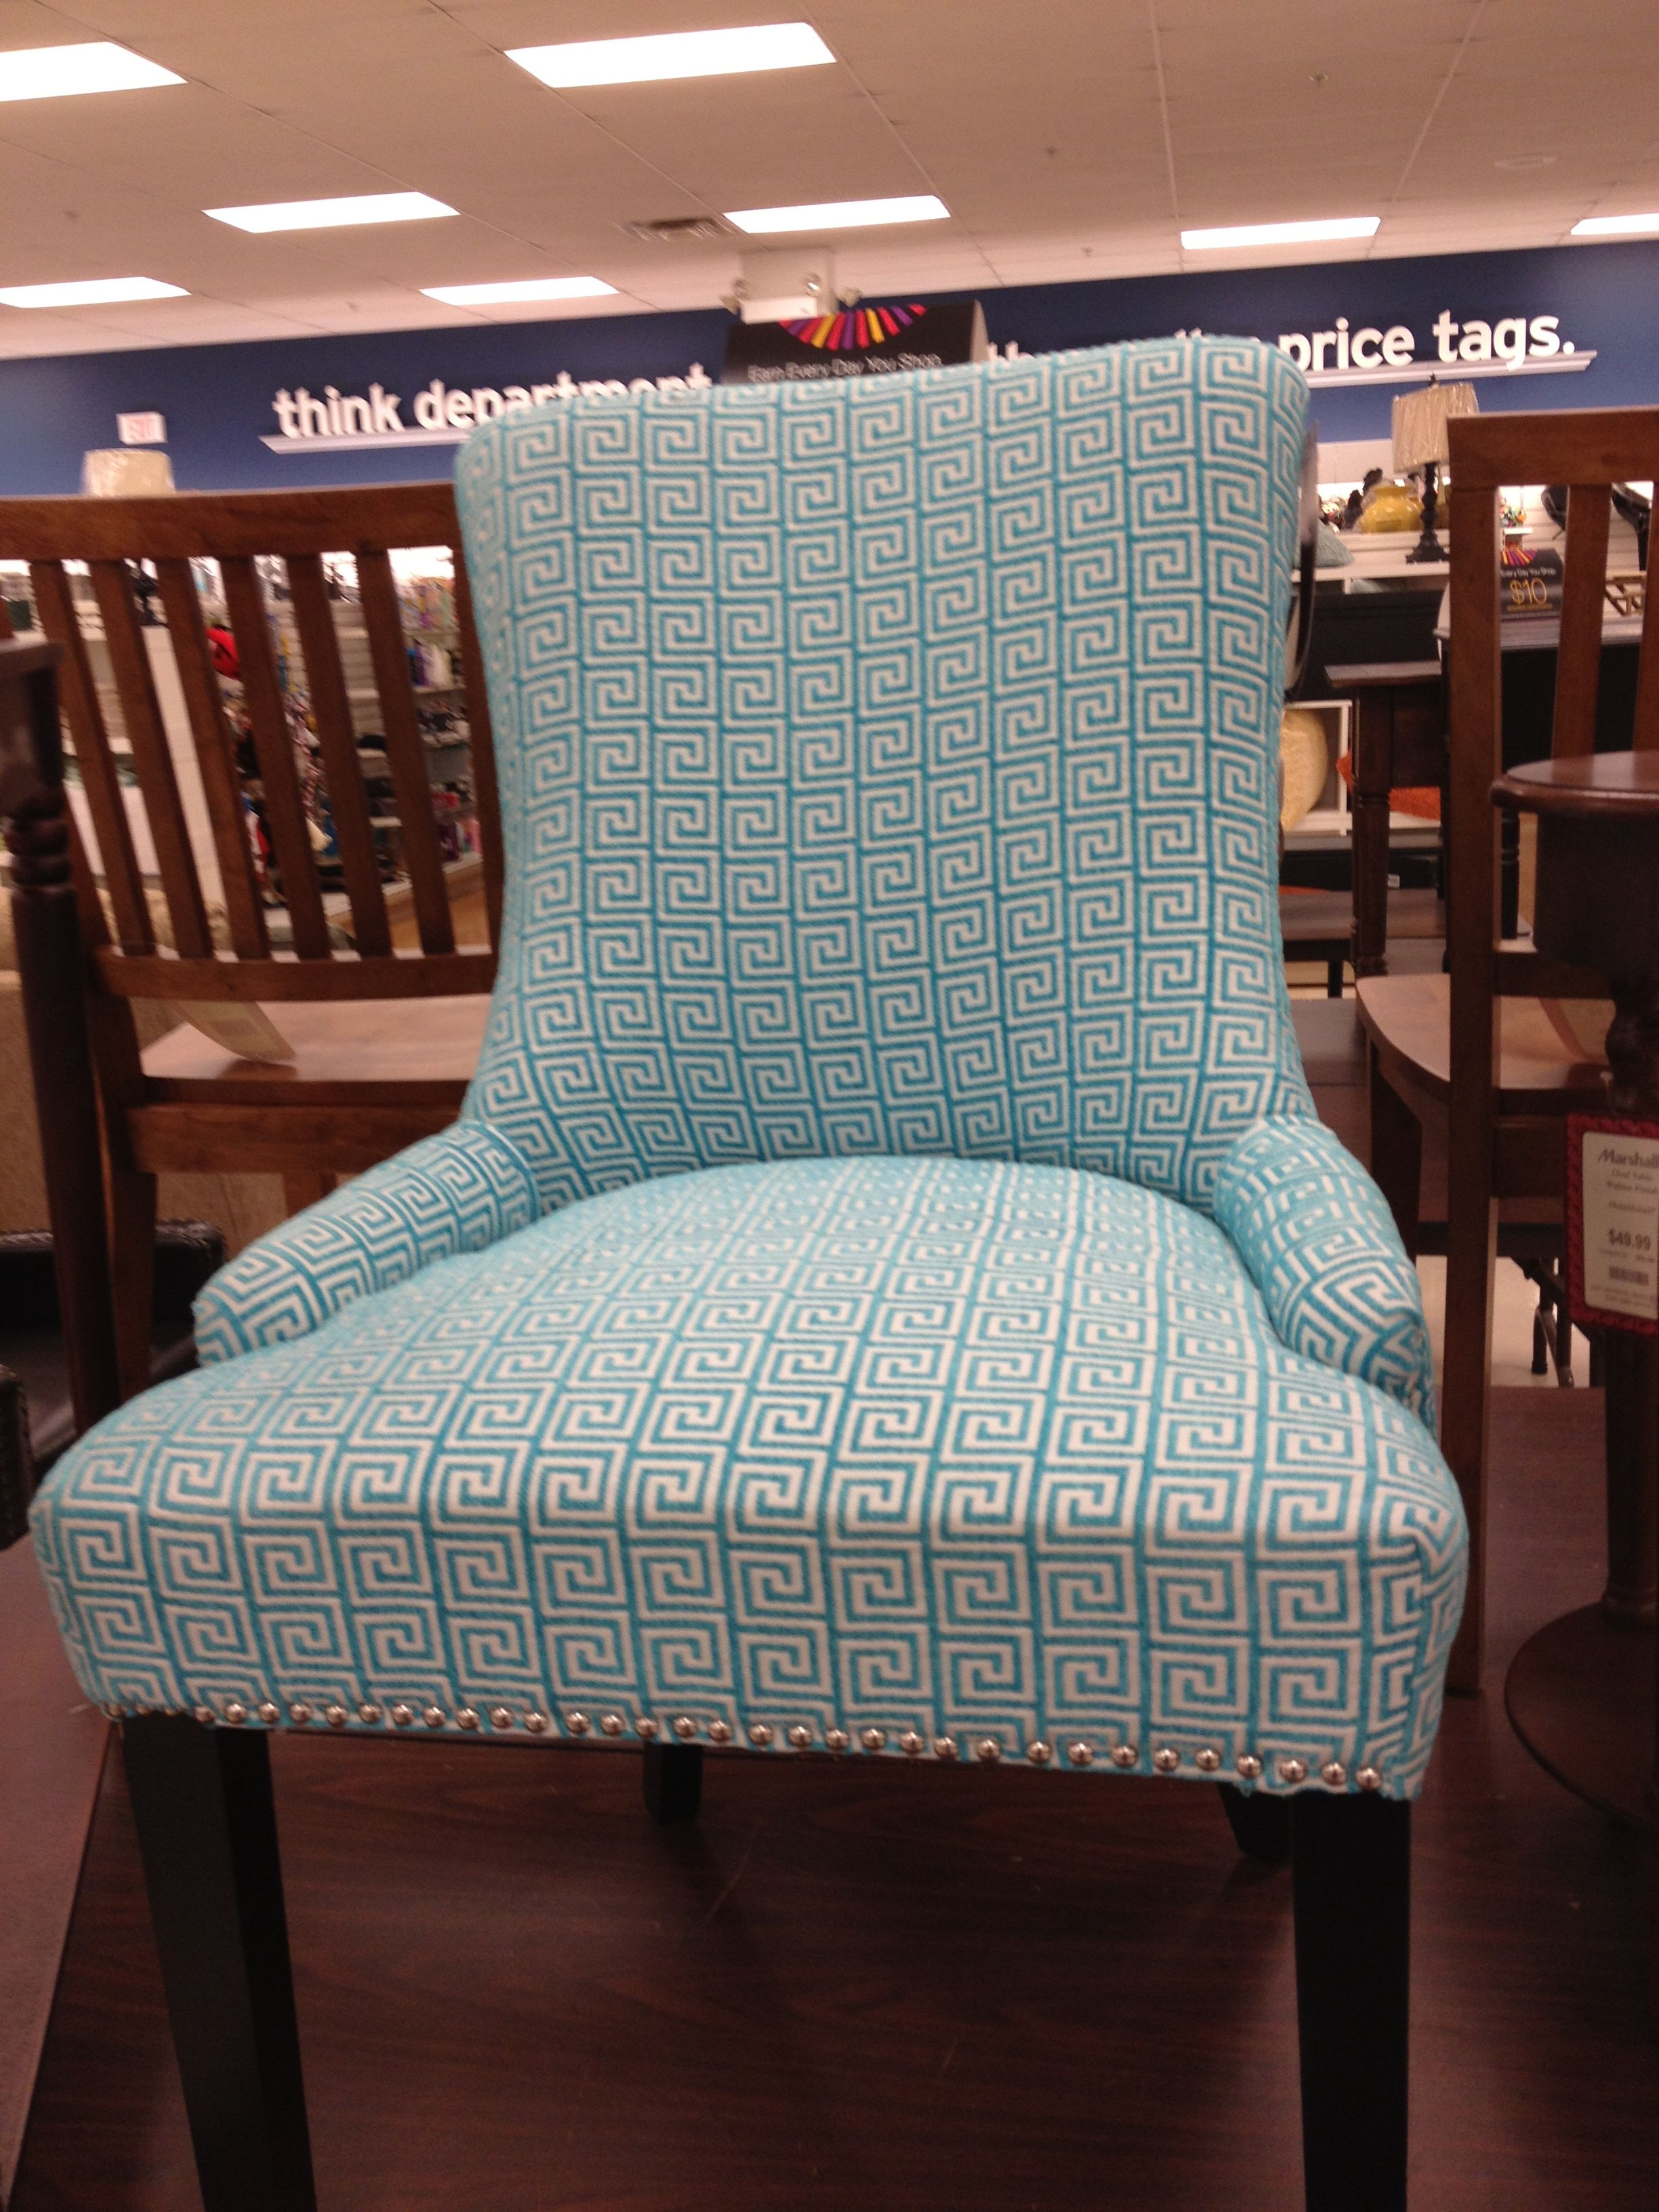 cynthia rowley chairs at marshalls rattan and table sets chair bought marshall s homestore would love another one please help to locate